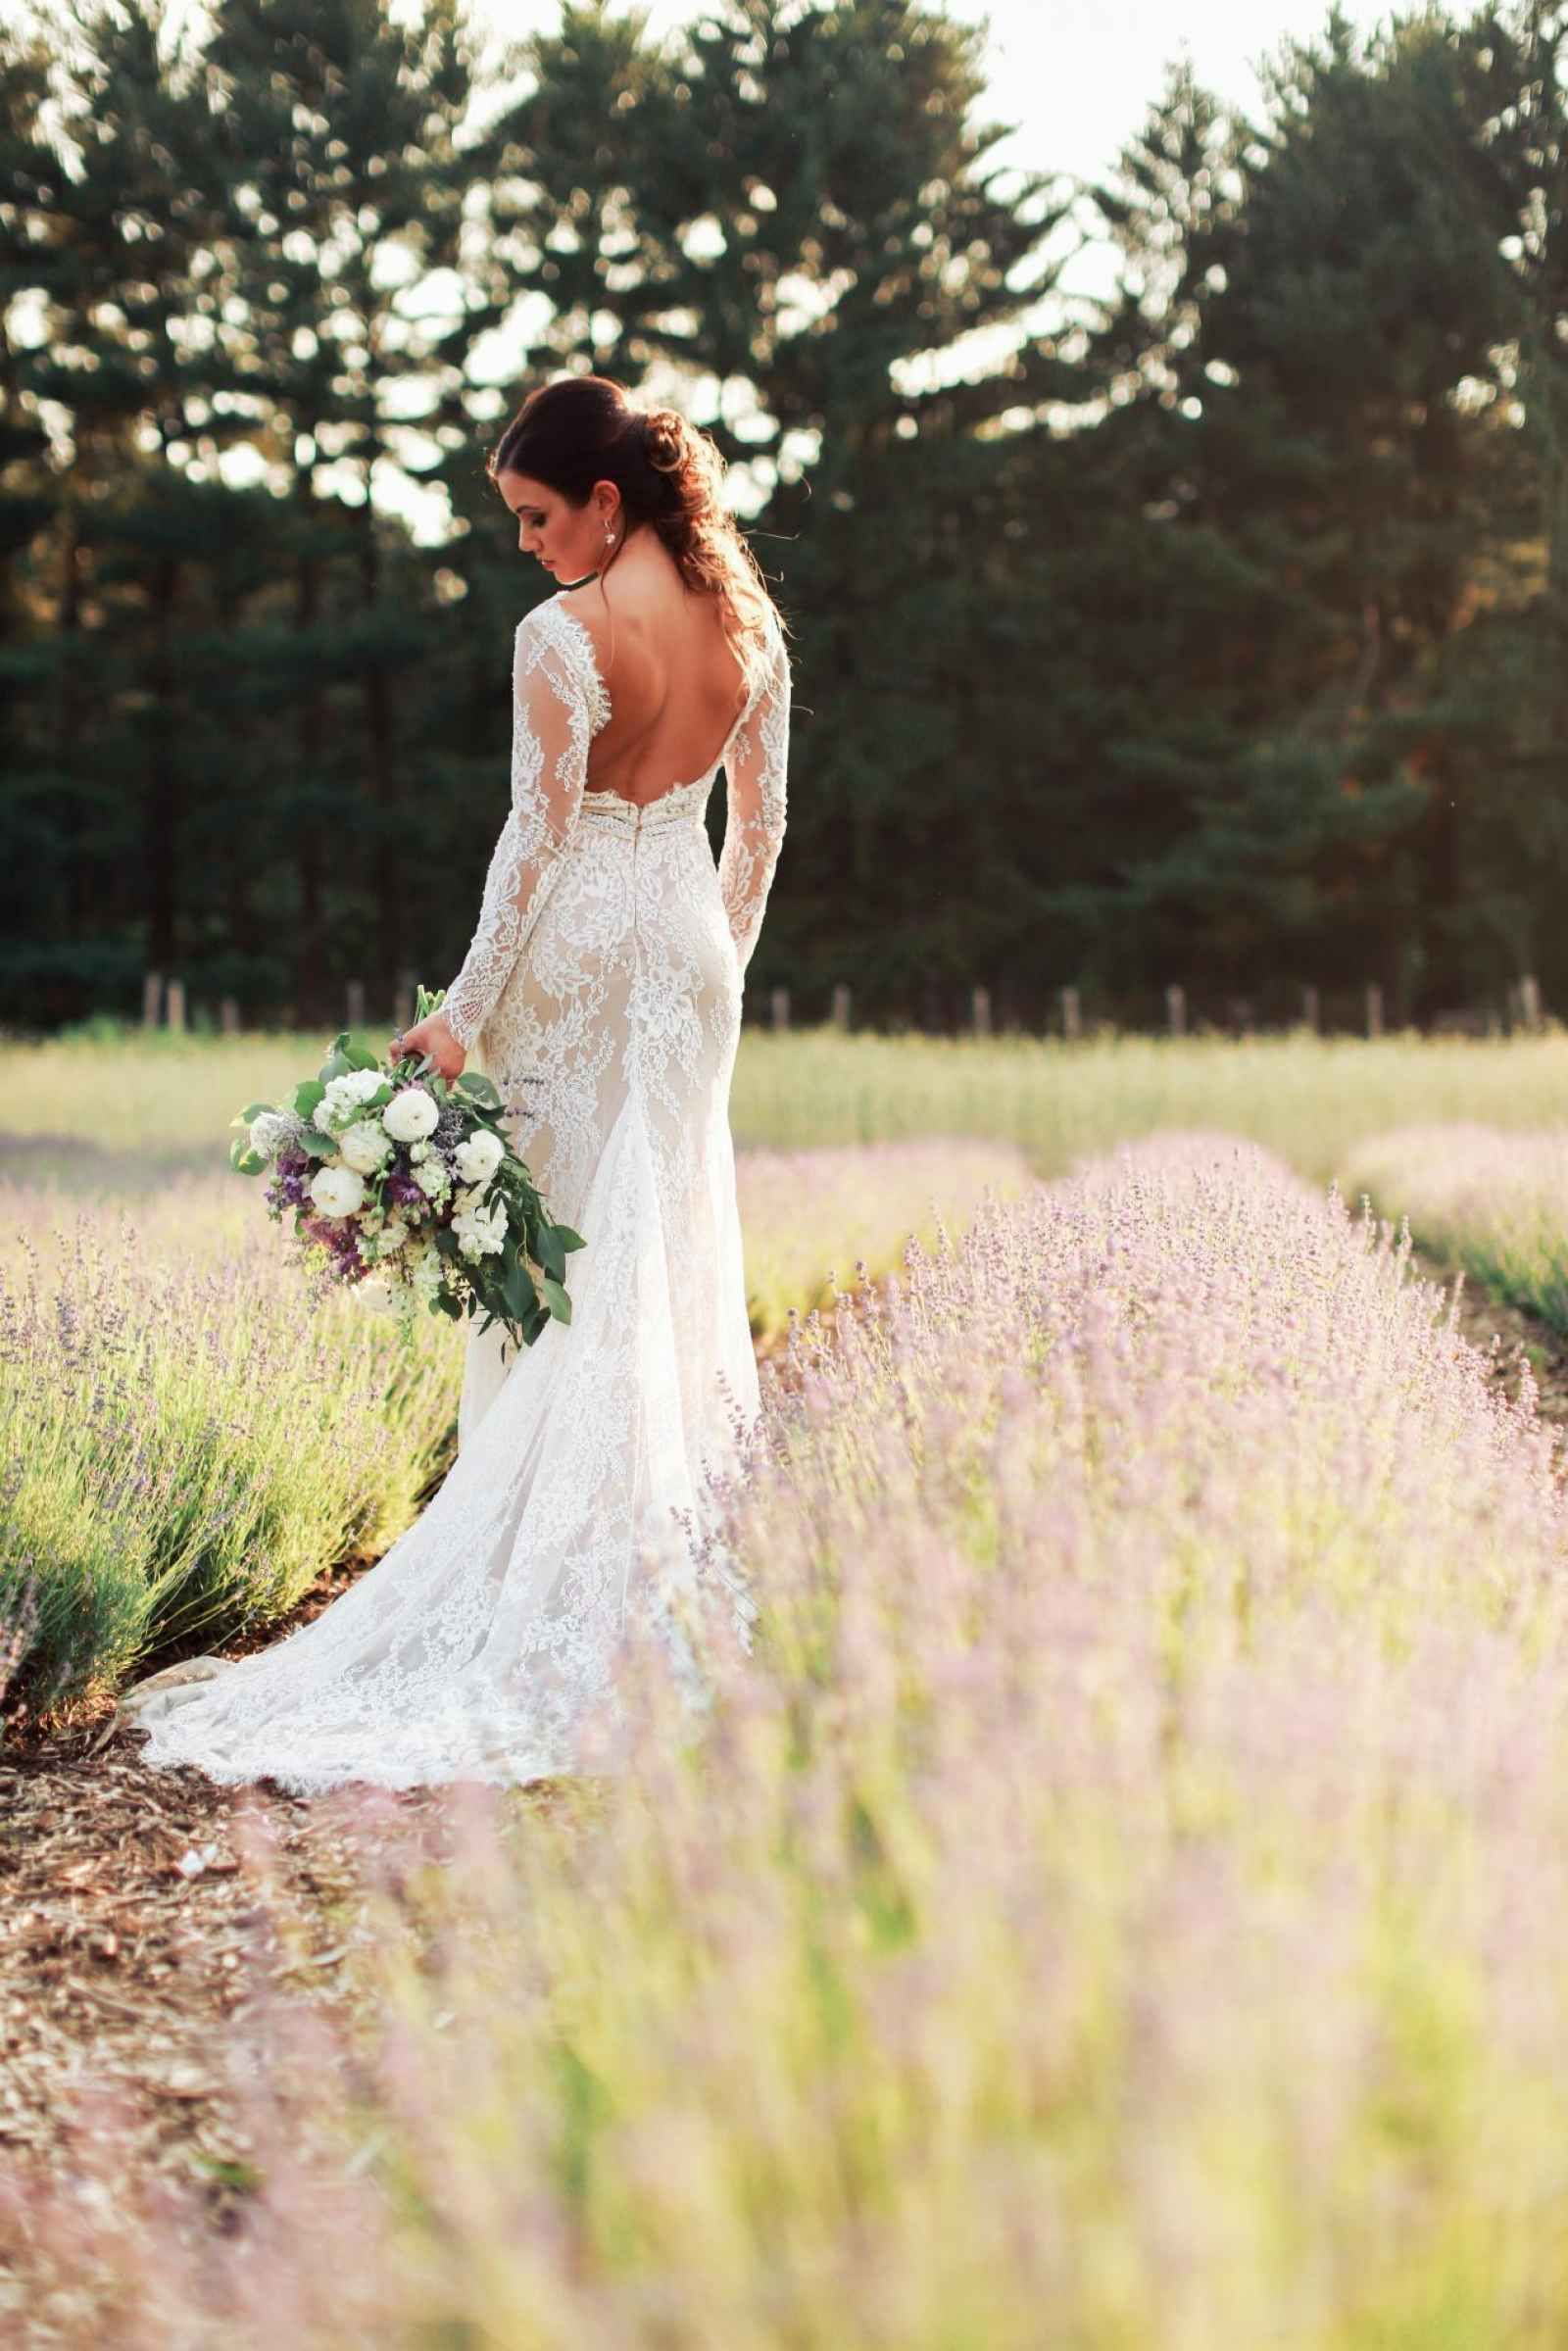 Long sleeve lace wedding dress with low back a style shoot in a